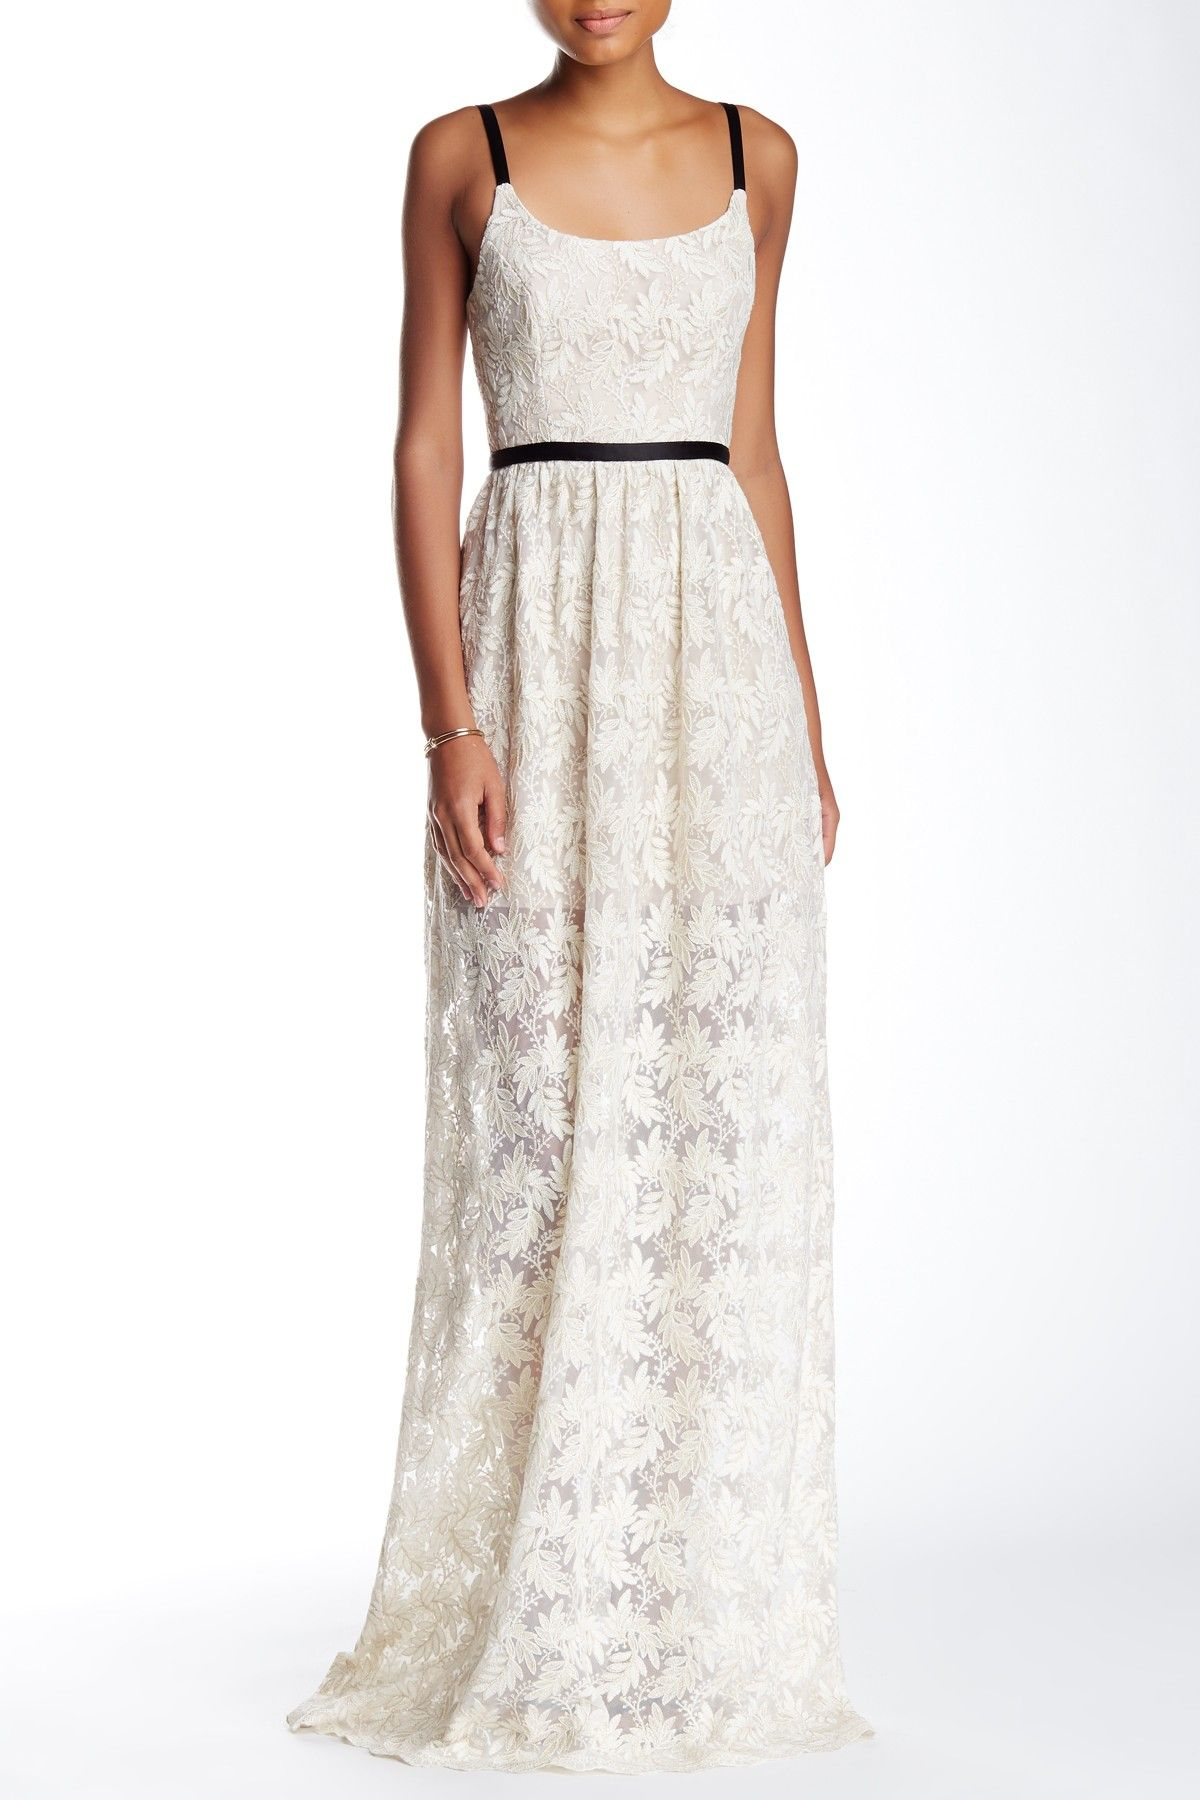 This gorgeous lace gown is perfect for a laid back wedding.